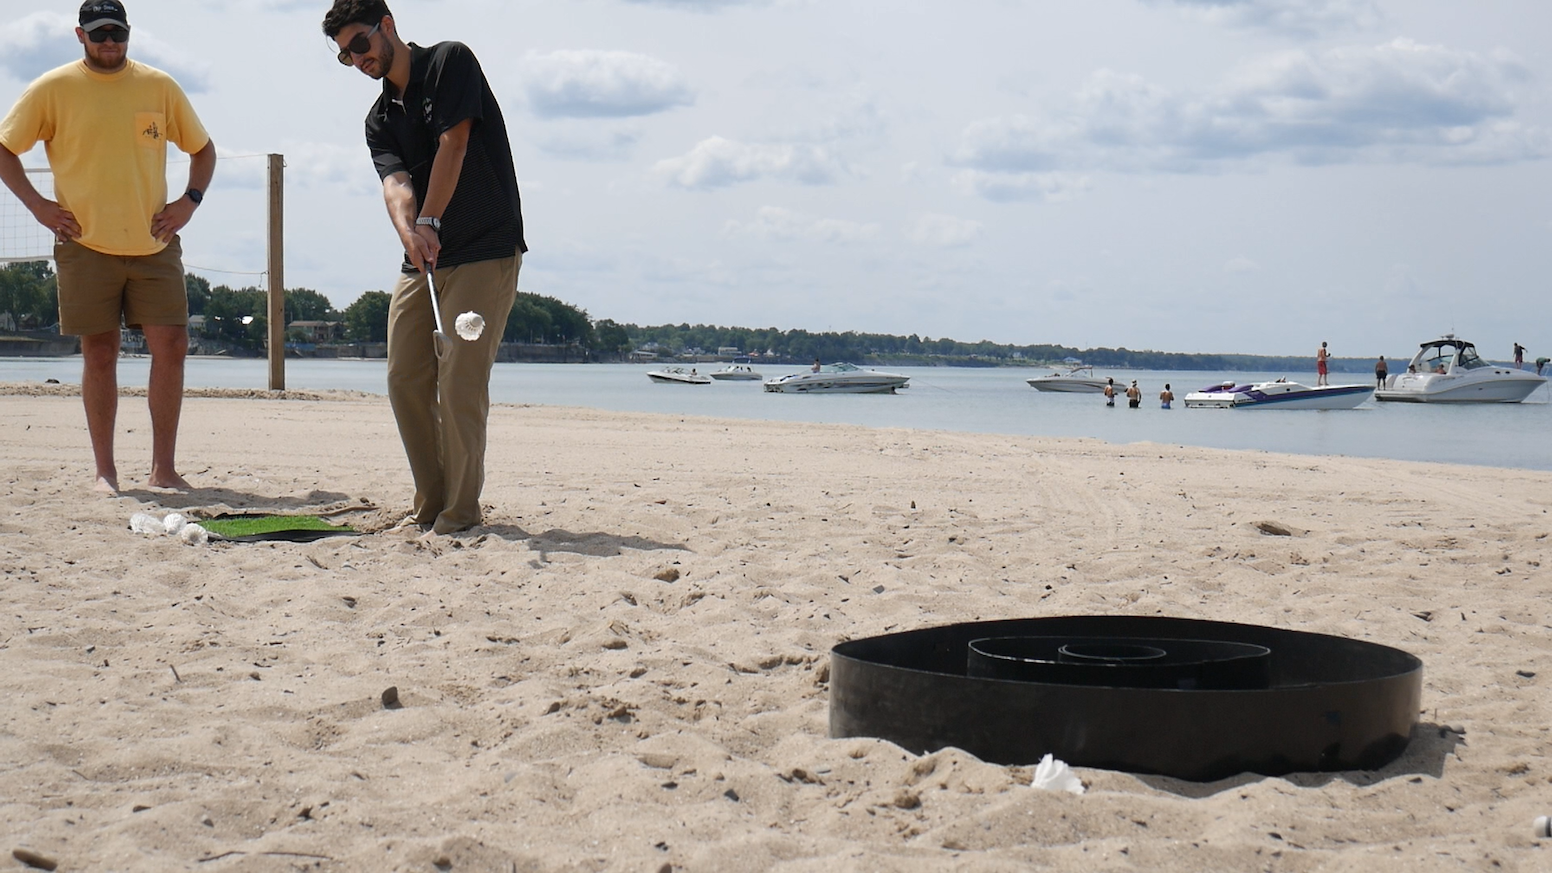 A portable golf-inspired backyard game that anyone can play. Patent Pending.